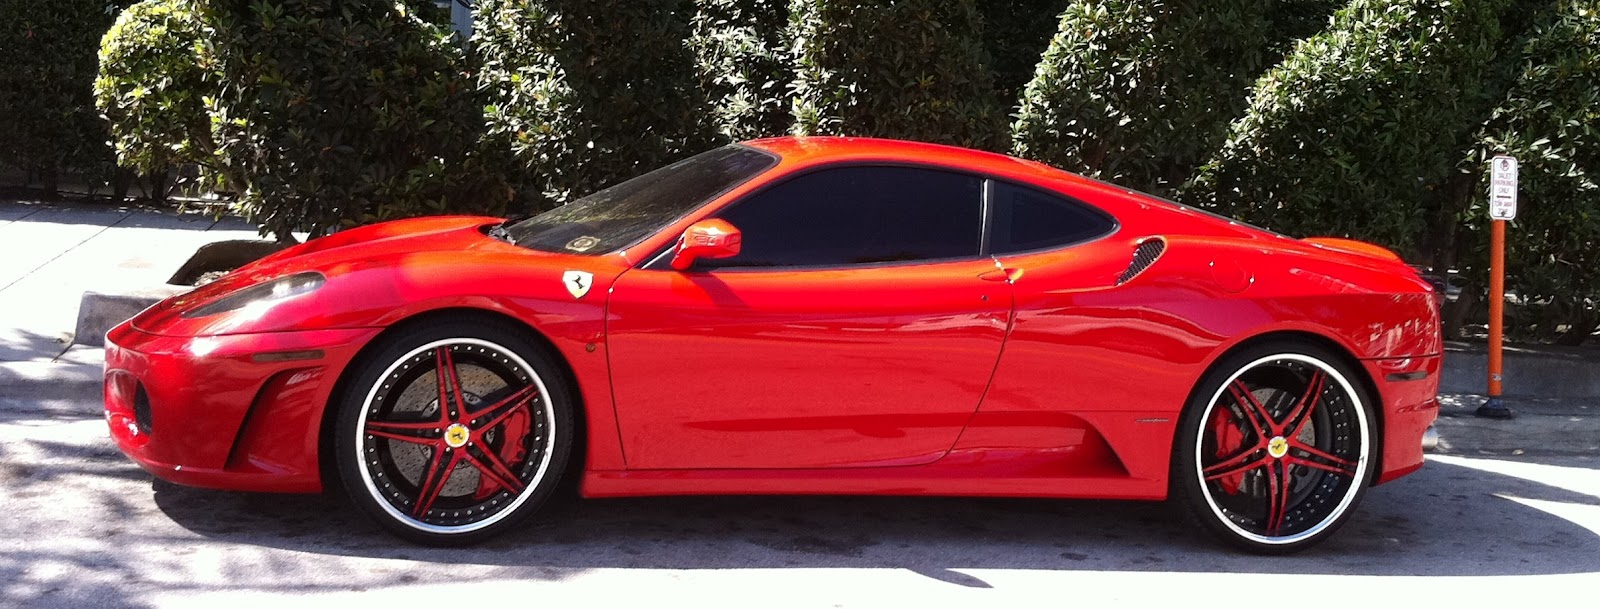 Red Ferrari F430 In Midtown Miami With Red And Black Custom Rims